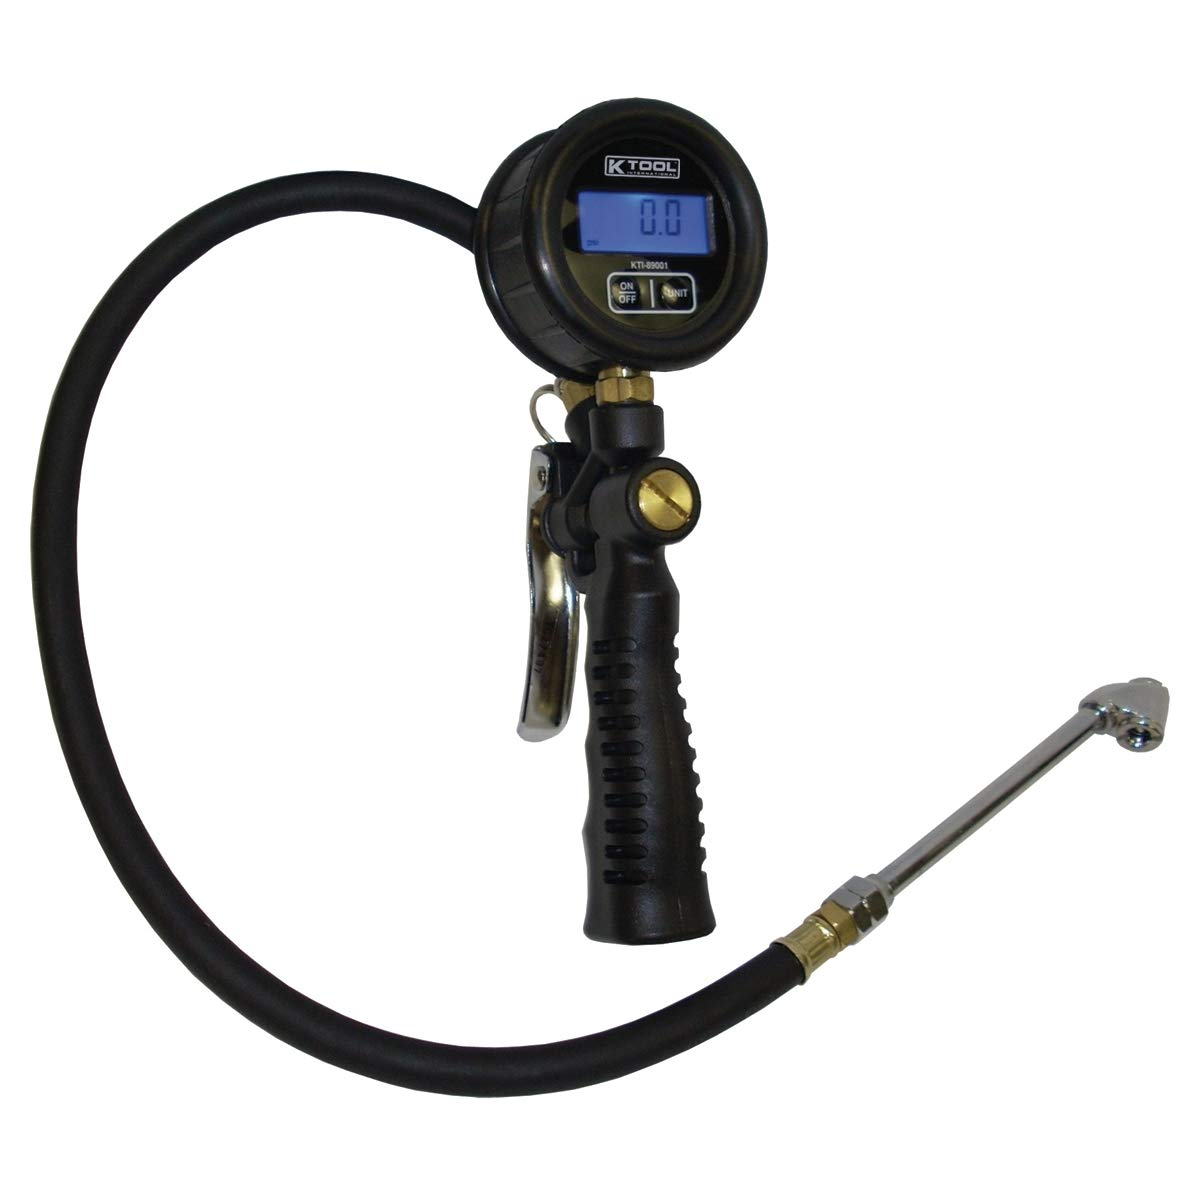 Top 10 Best Tire Inflators With Gauges Reviews in 2020 7